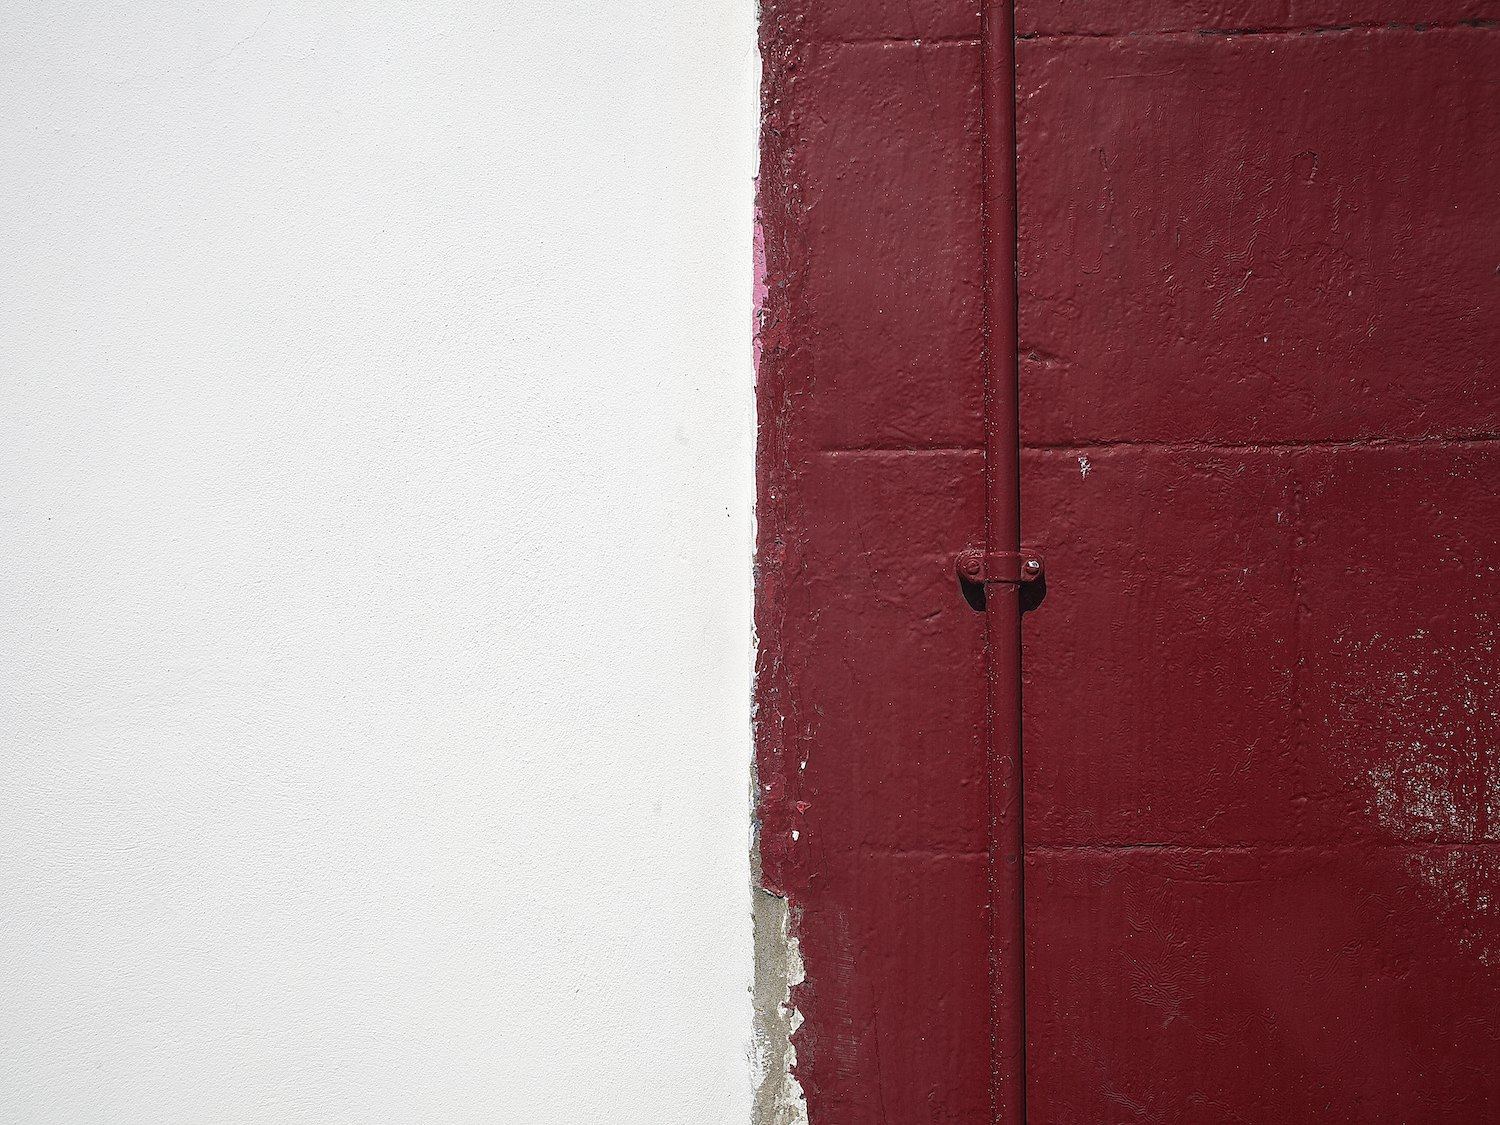 Christopher-Swan-Mull-Tobermory-Colours-abstract 52014-04-18.jpg